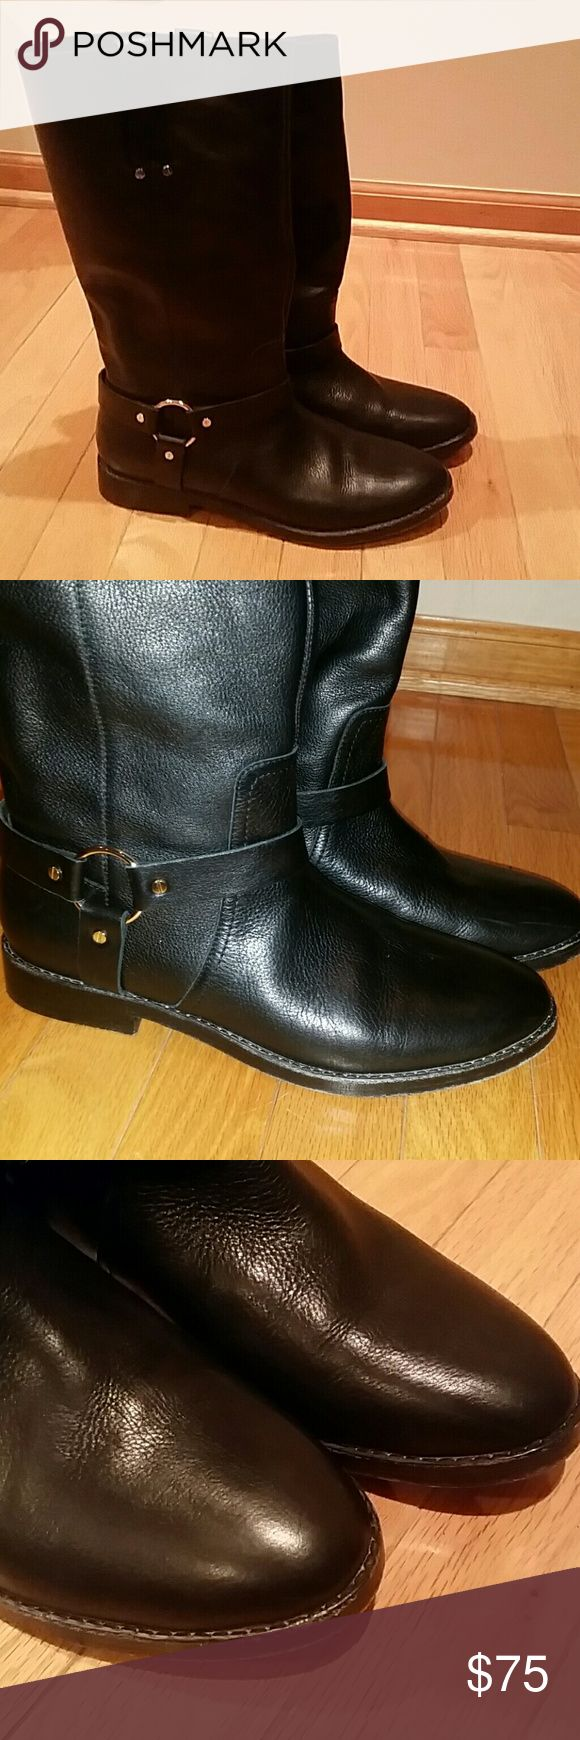 Joie Mid calf boots Beautiful mid calf boots. No zipper. Leather. Scuffed on bottom. Buckles on inner and outer ankle. Joie Shoes Heeled Boots